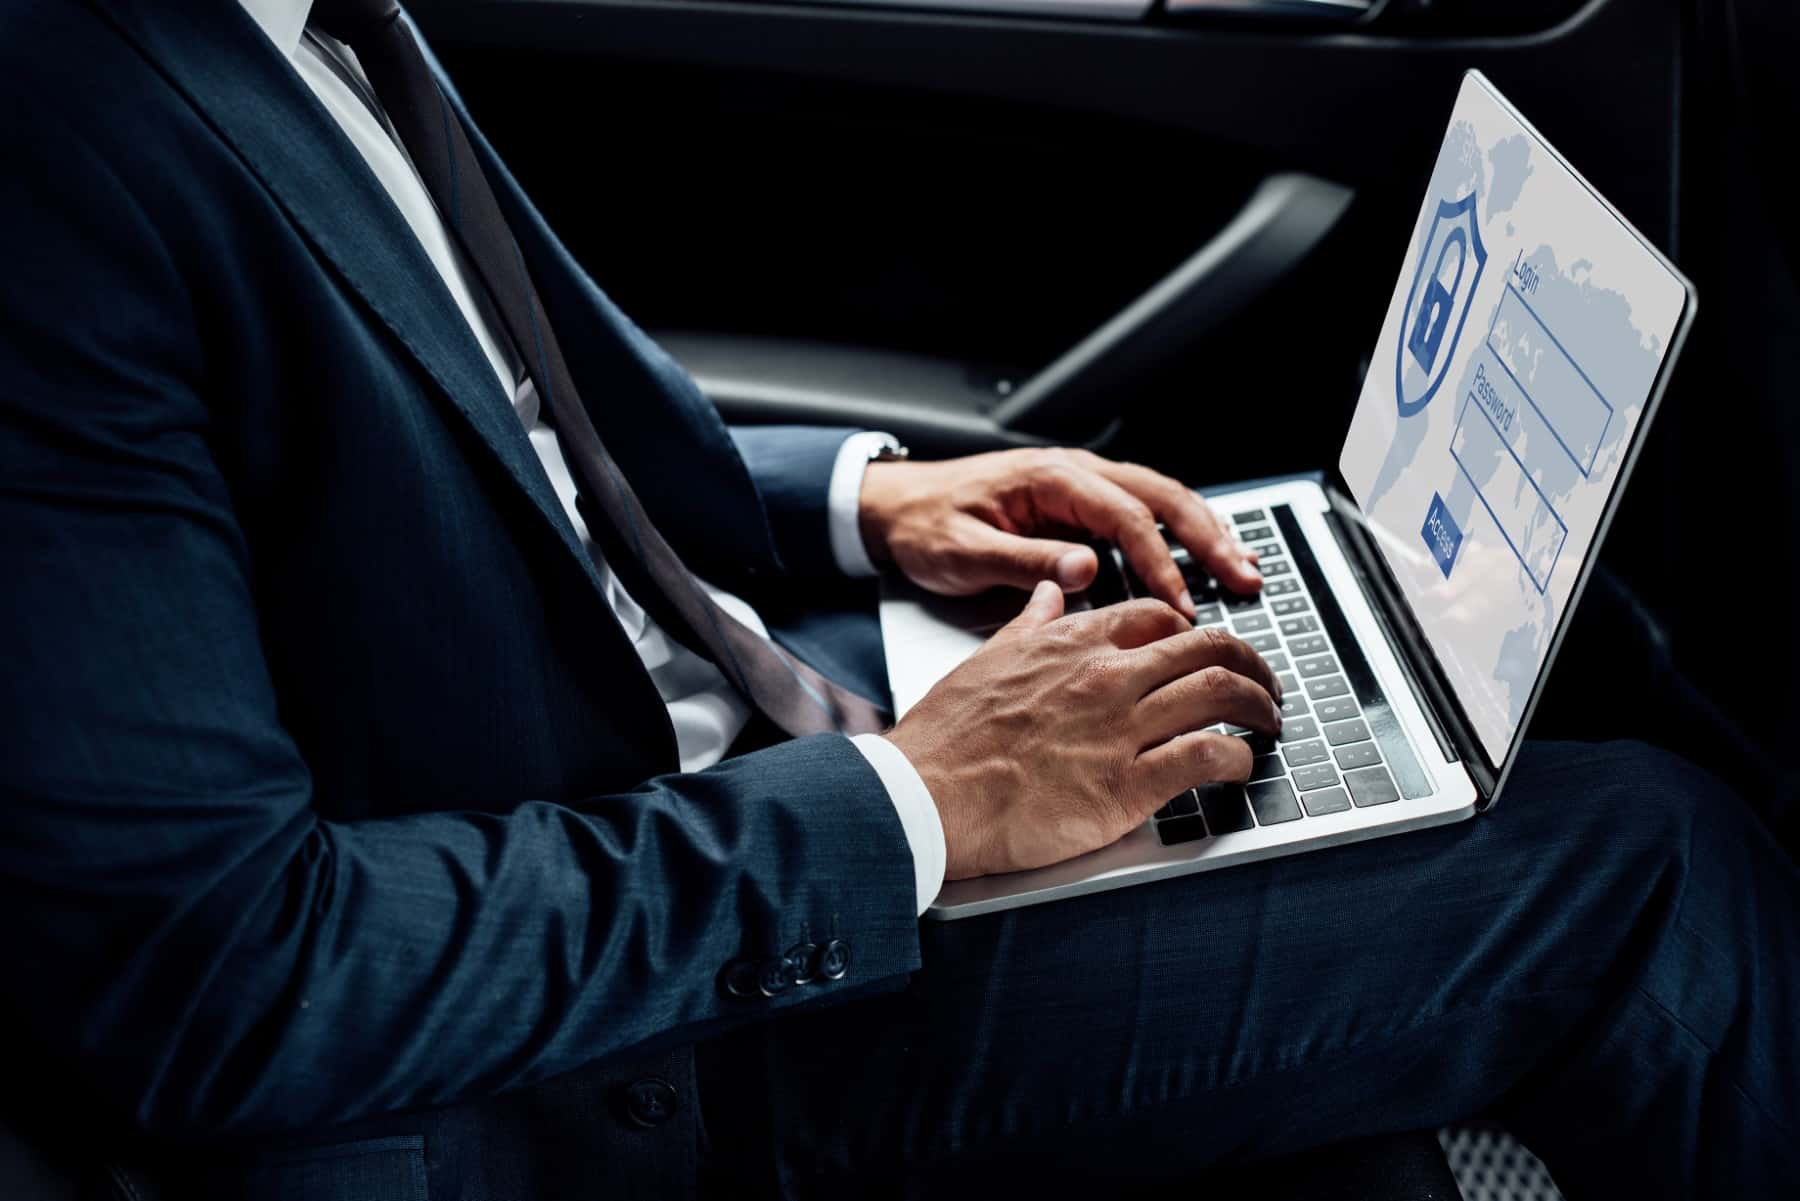 partial view of american businessman using laptop with internet security illustration in car